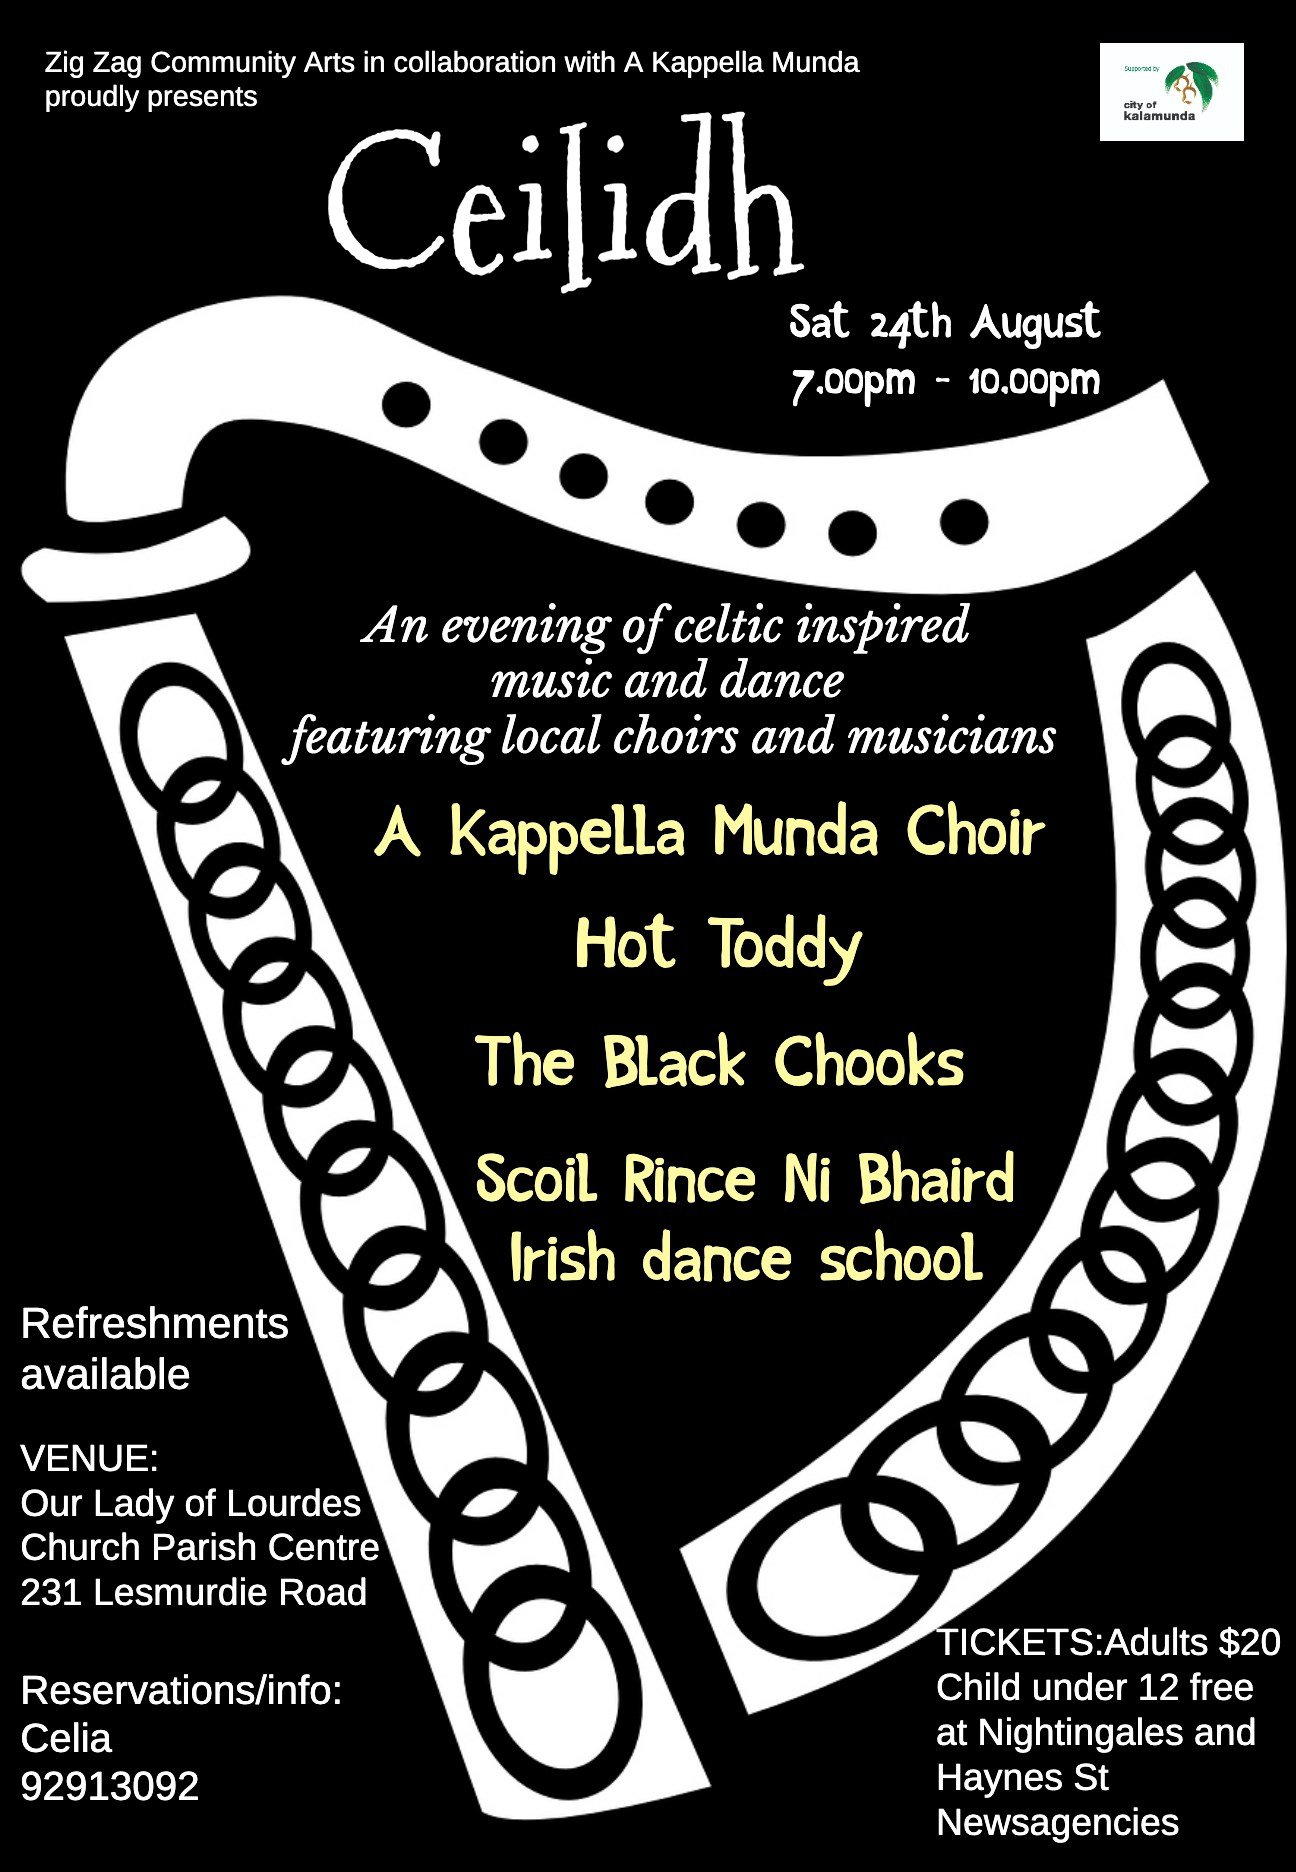 Poster listing performers A Kappella Munda, Hot Toddy, Black Chooks, and Scoil Rince ni Bhaird irish dance school